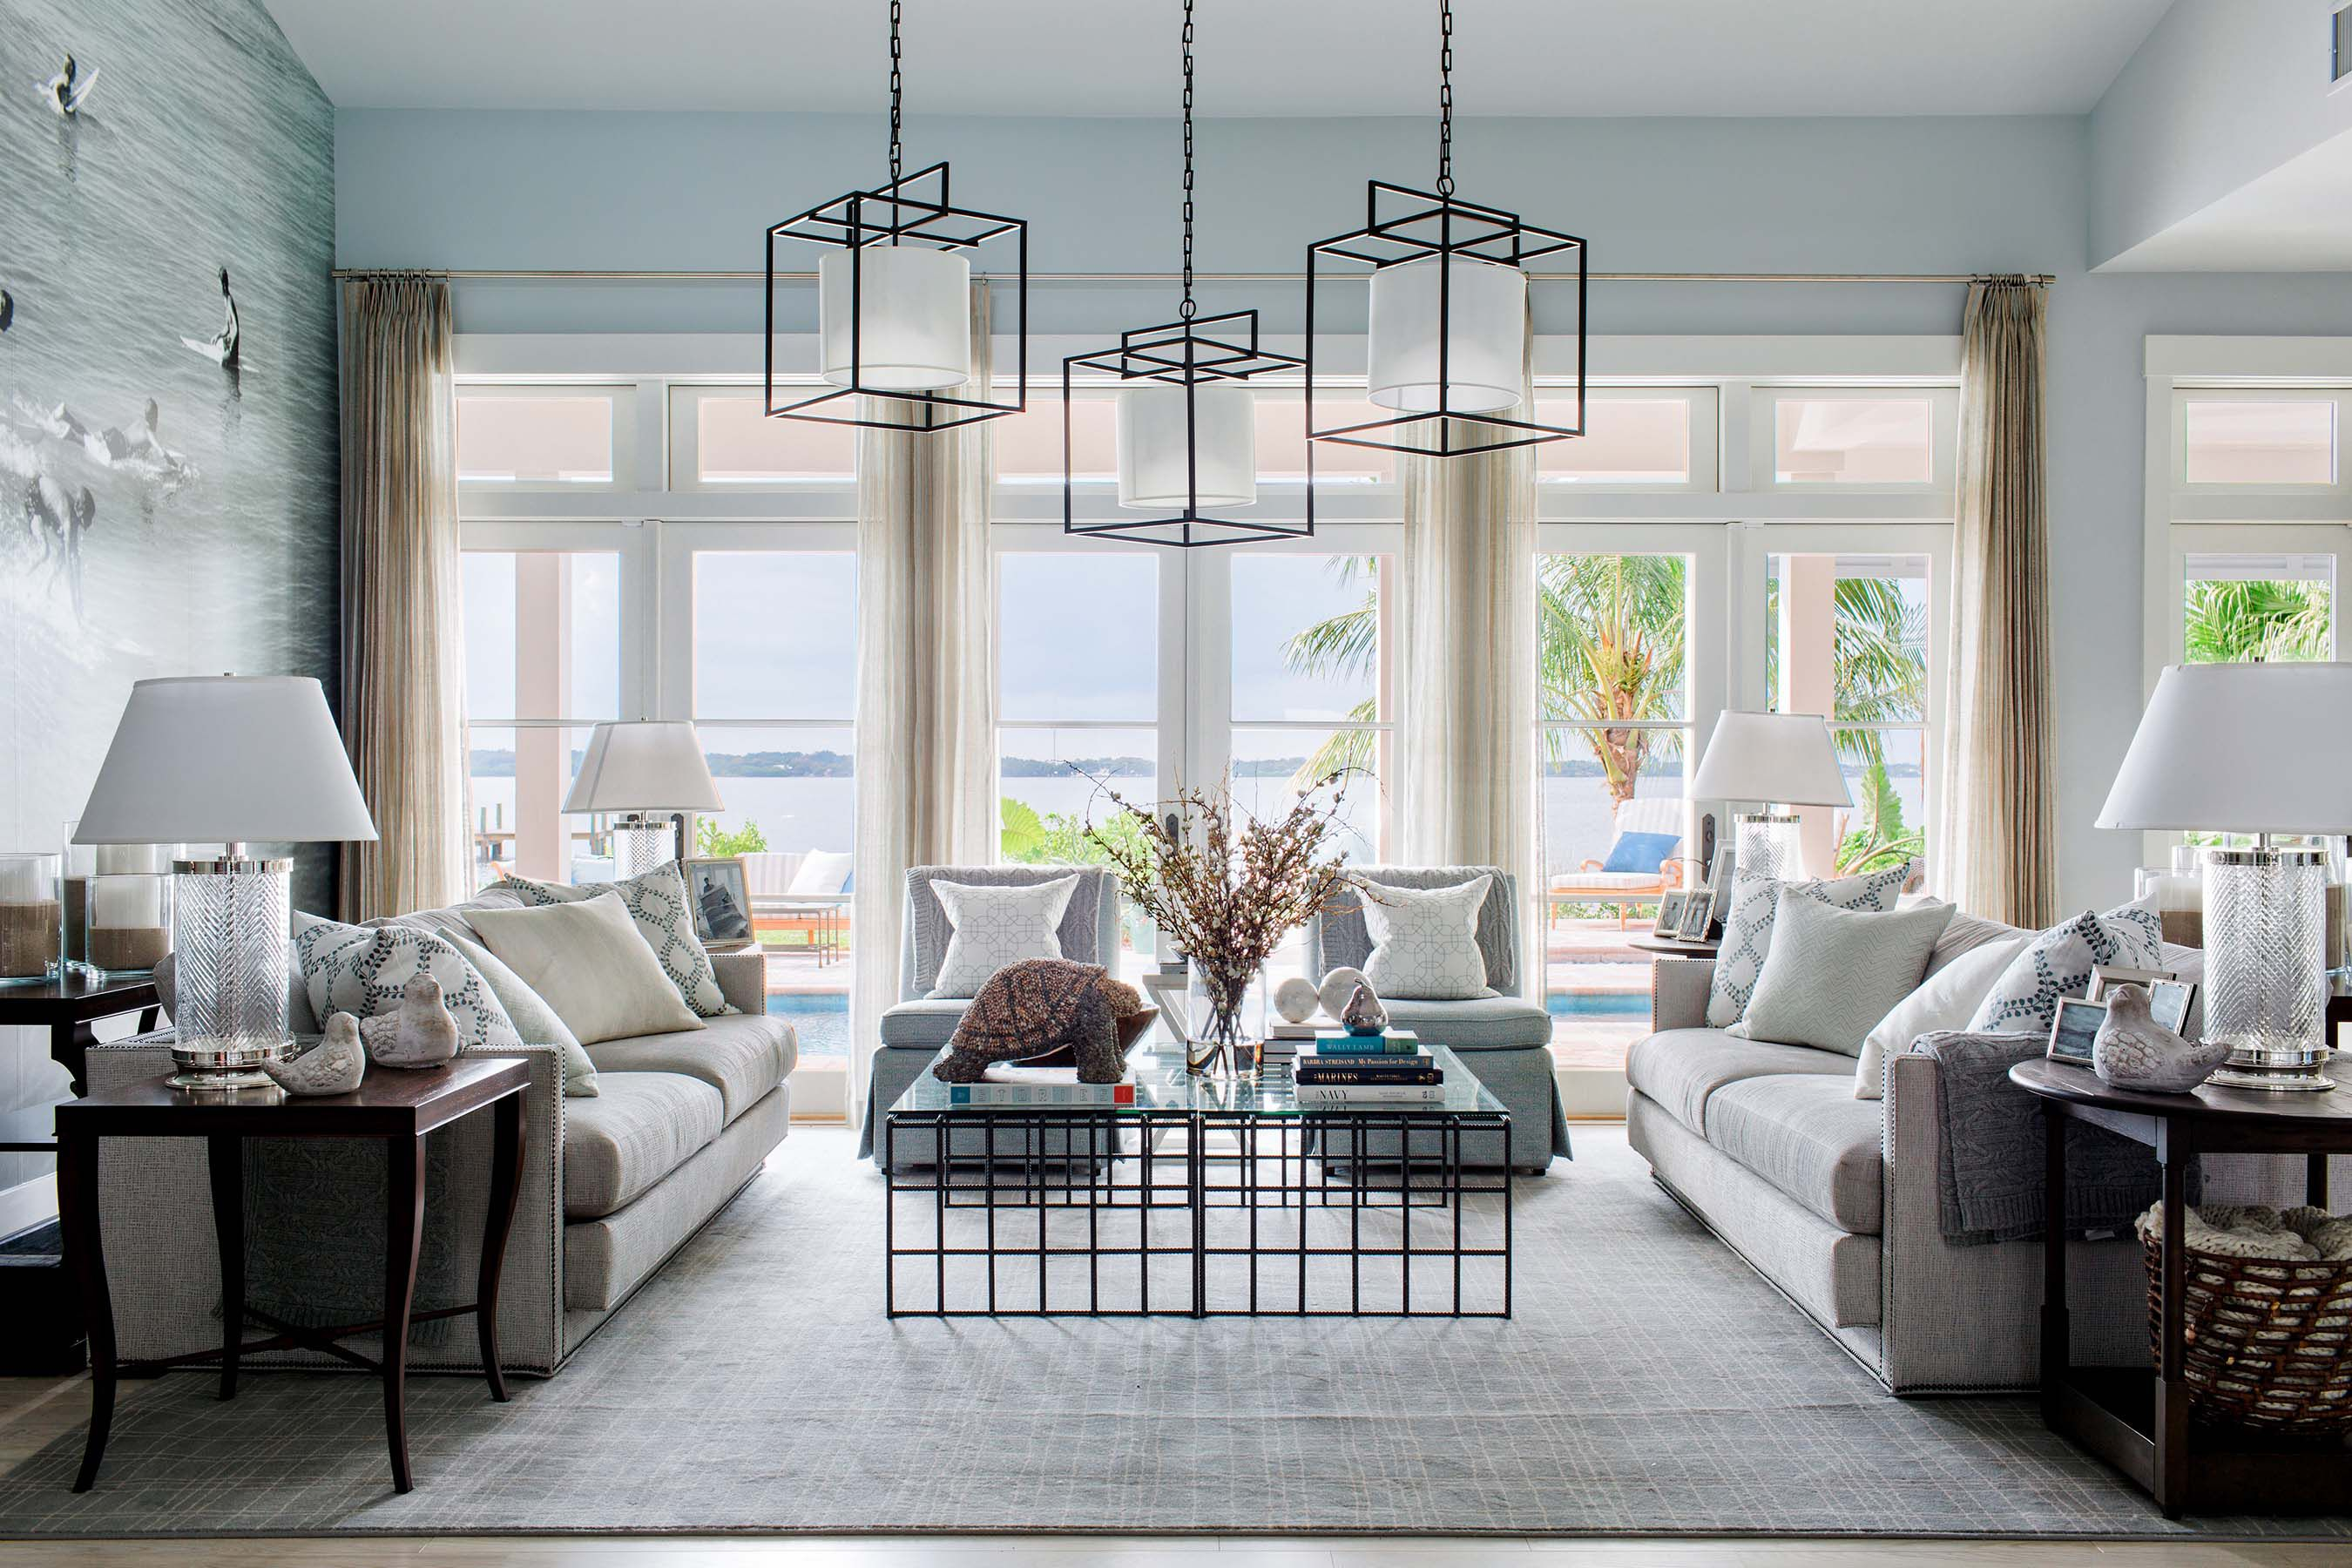 Photo of the 2016 Dream Home's Living Room